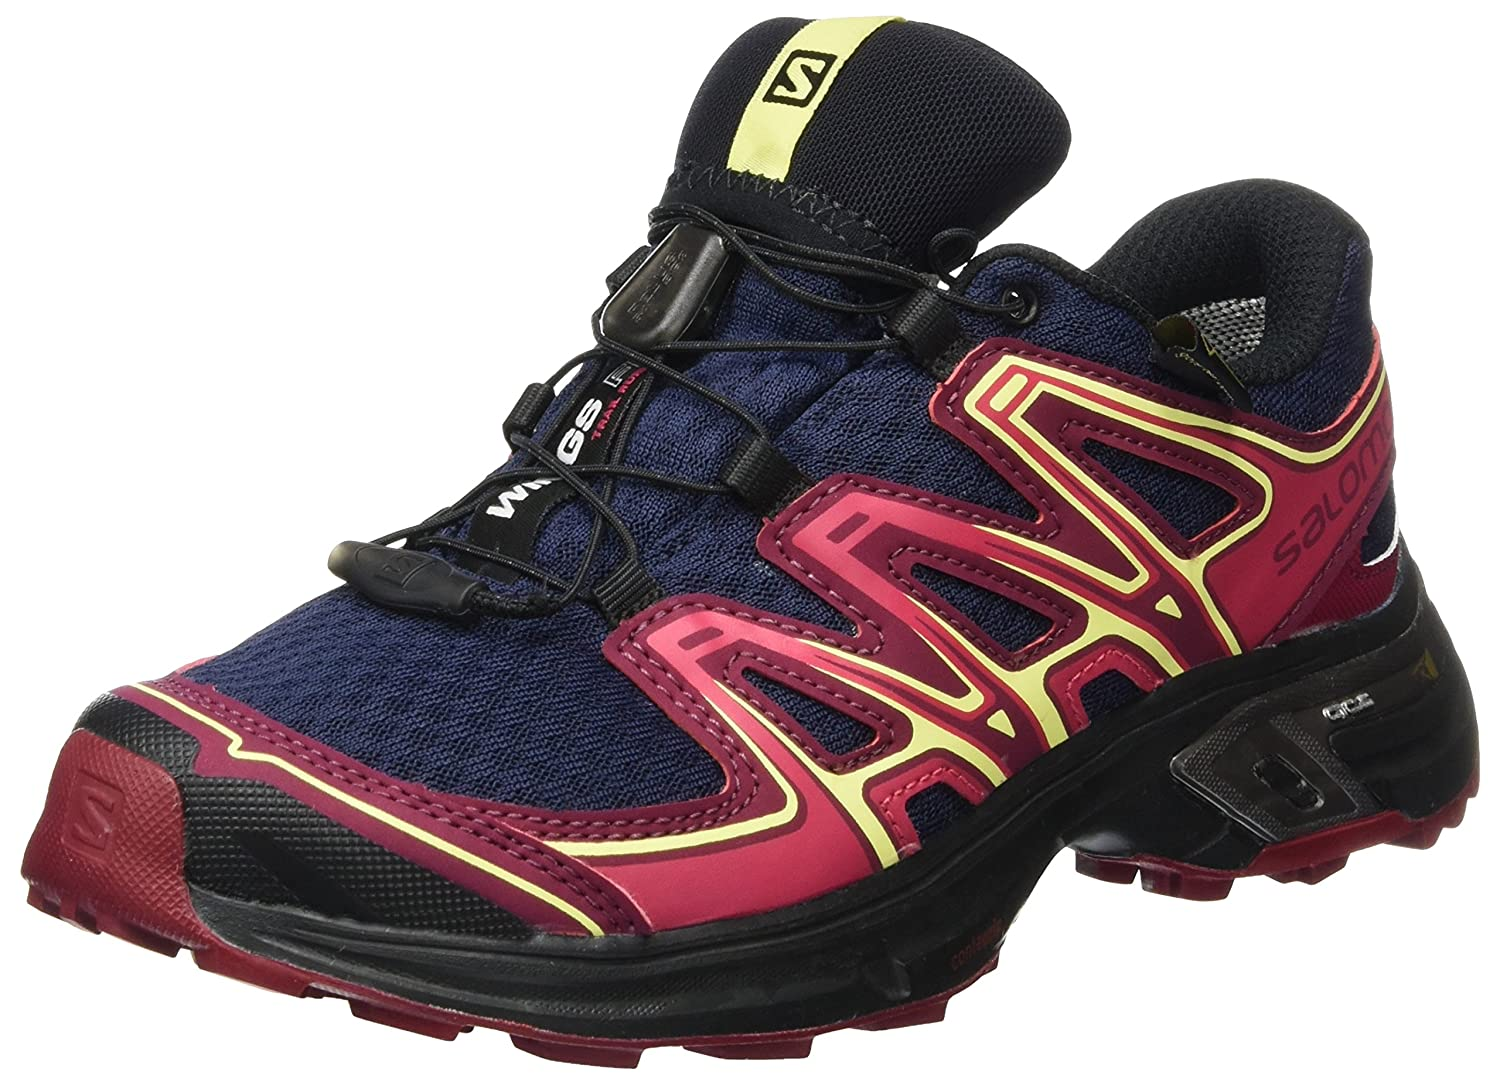 Salomon Femme Wings Flyte 2 GTX Chaussures de Course à Pied et Trail Running - Bleu (Evening Blue/Beet Red/Sunny Lime)